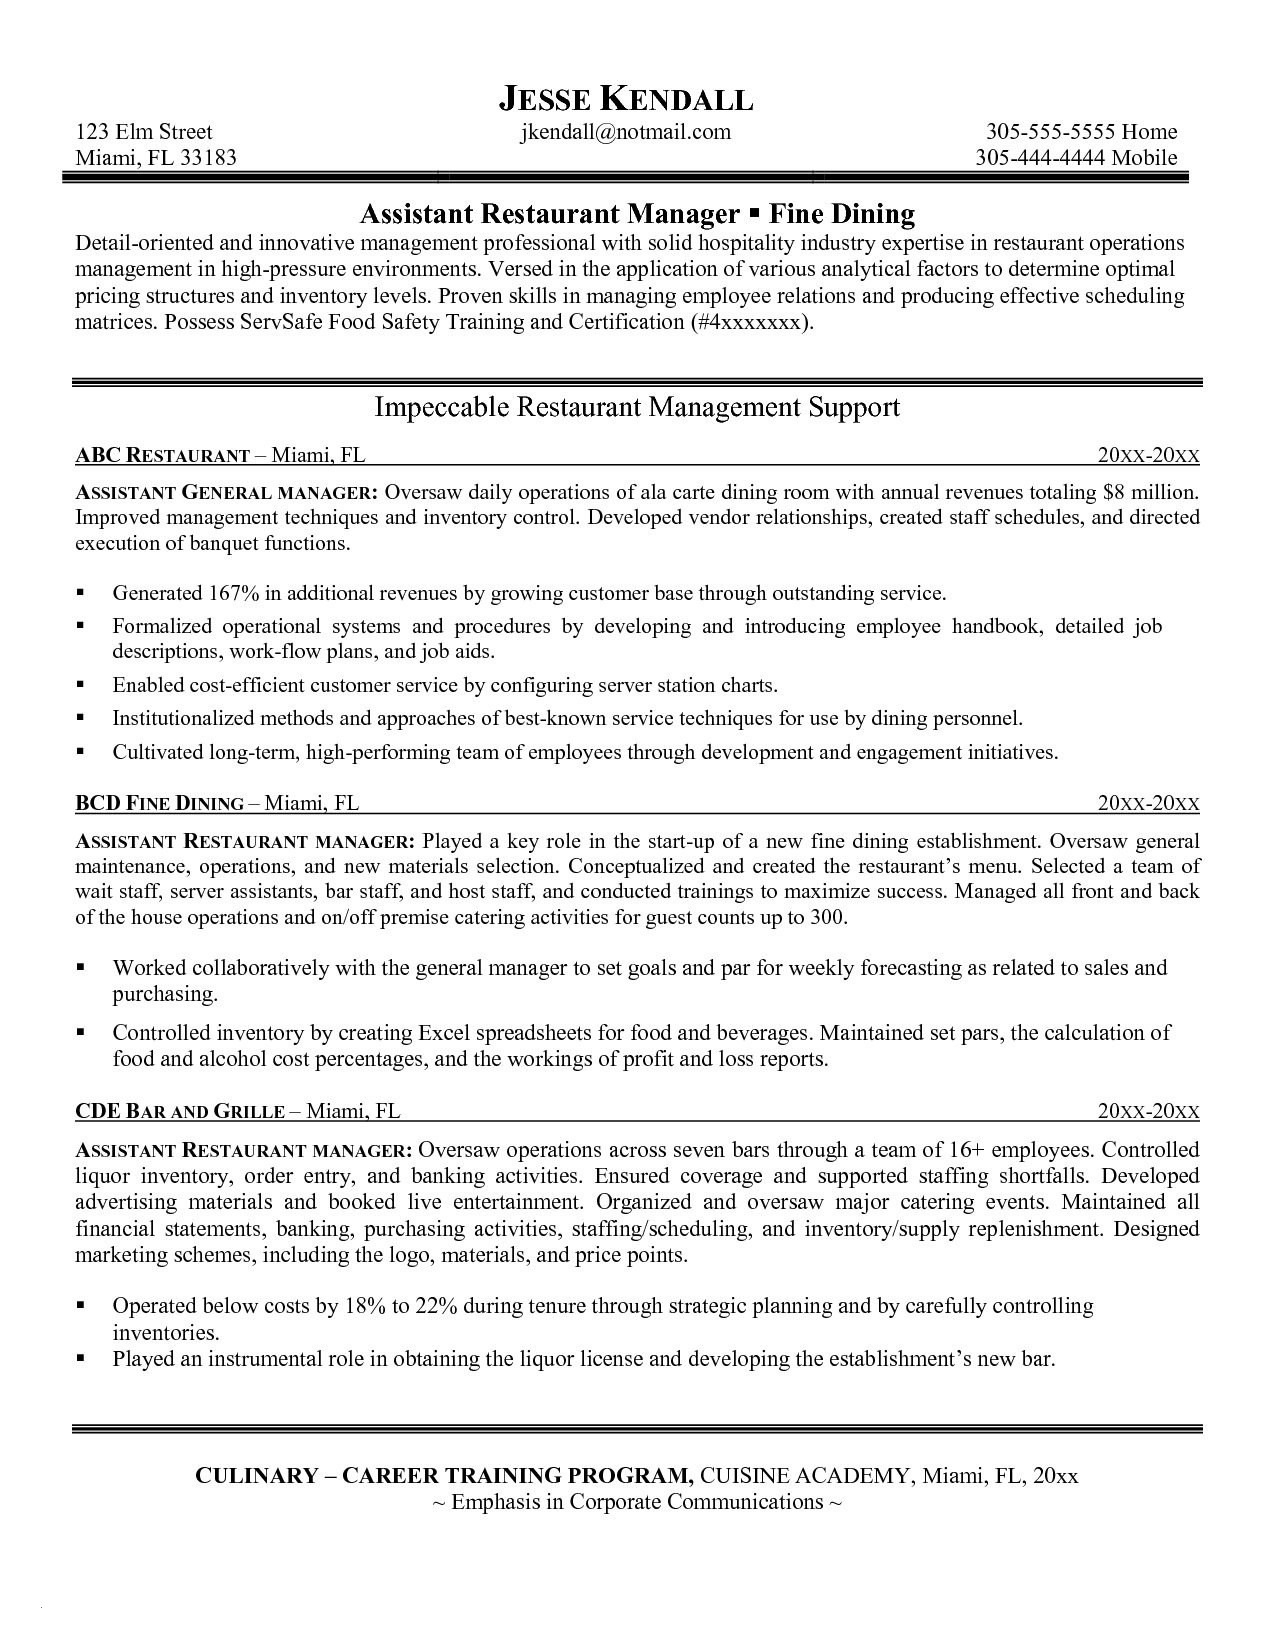 restaurant manager resume template example-Restaurant Manager Resume Template Unique Lovely Grapher Resume Sample Beautiful Resume Quotes 0d assistant 6-l